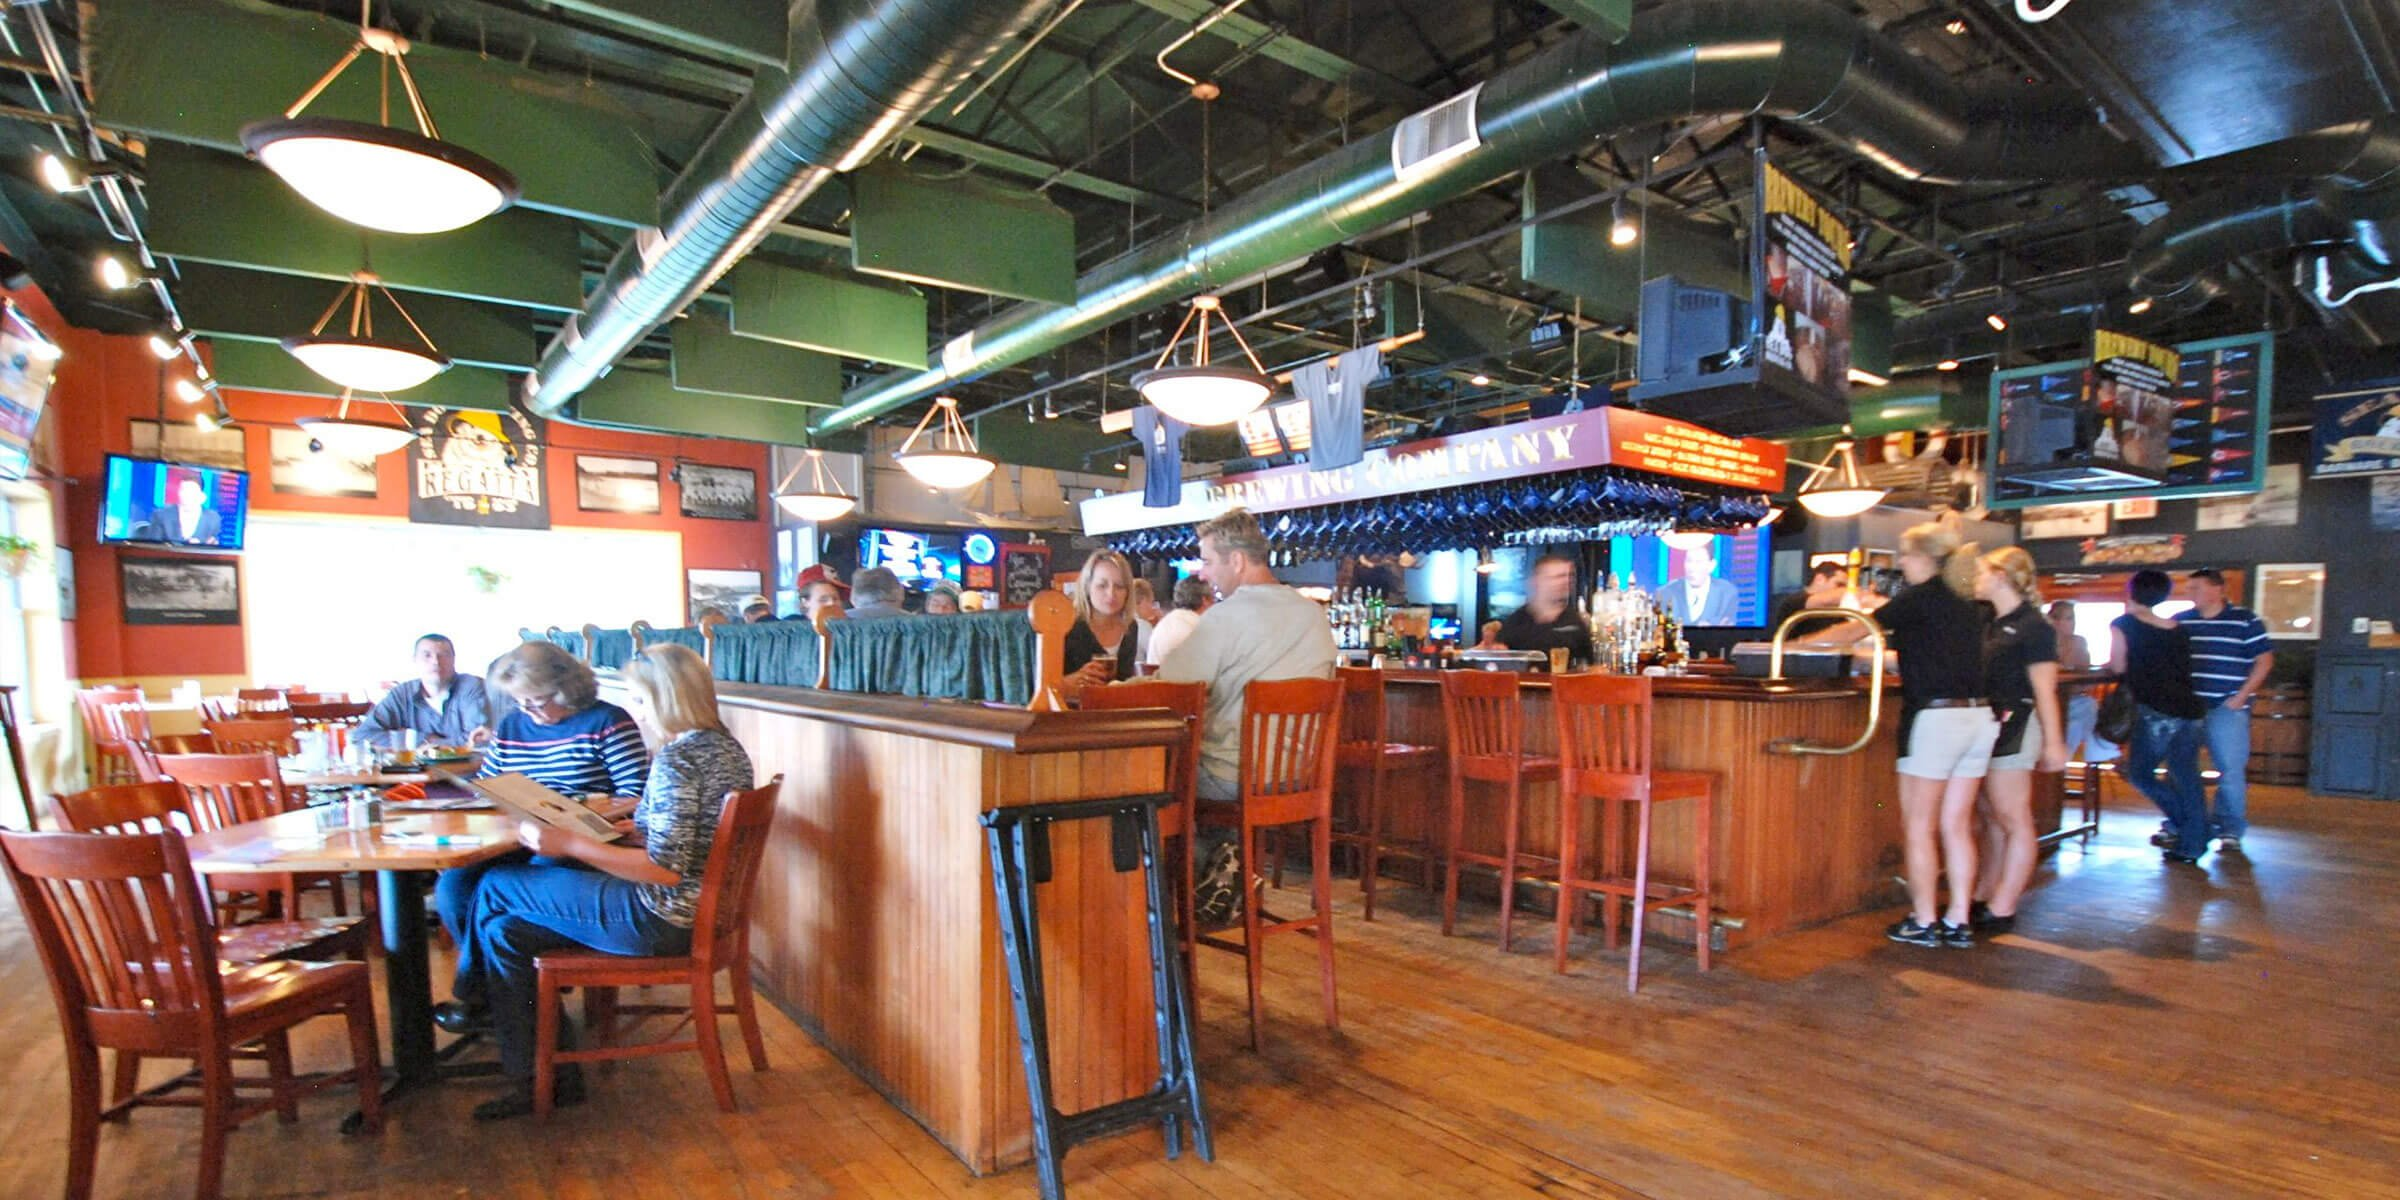 Inside the brewpub at Sea Dog Brewing Co. in Bangor, Maine